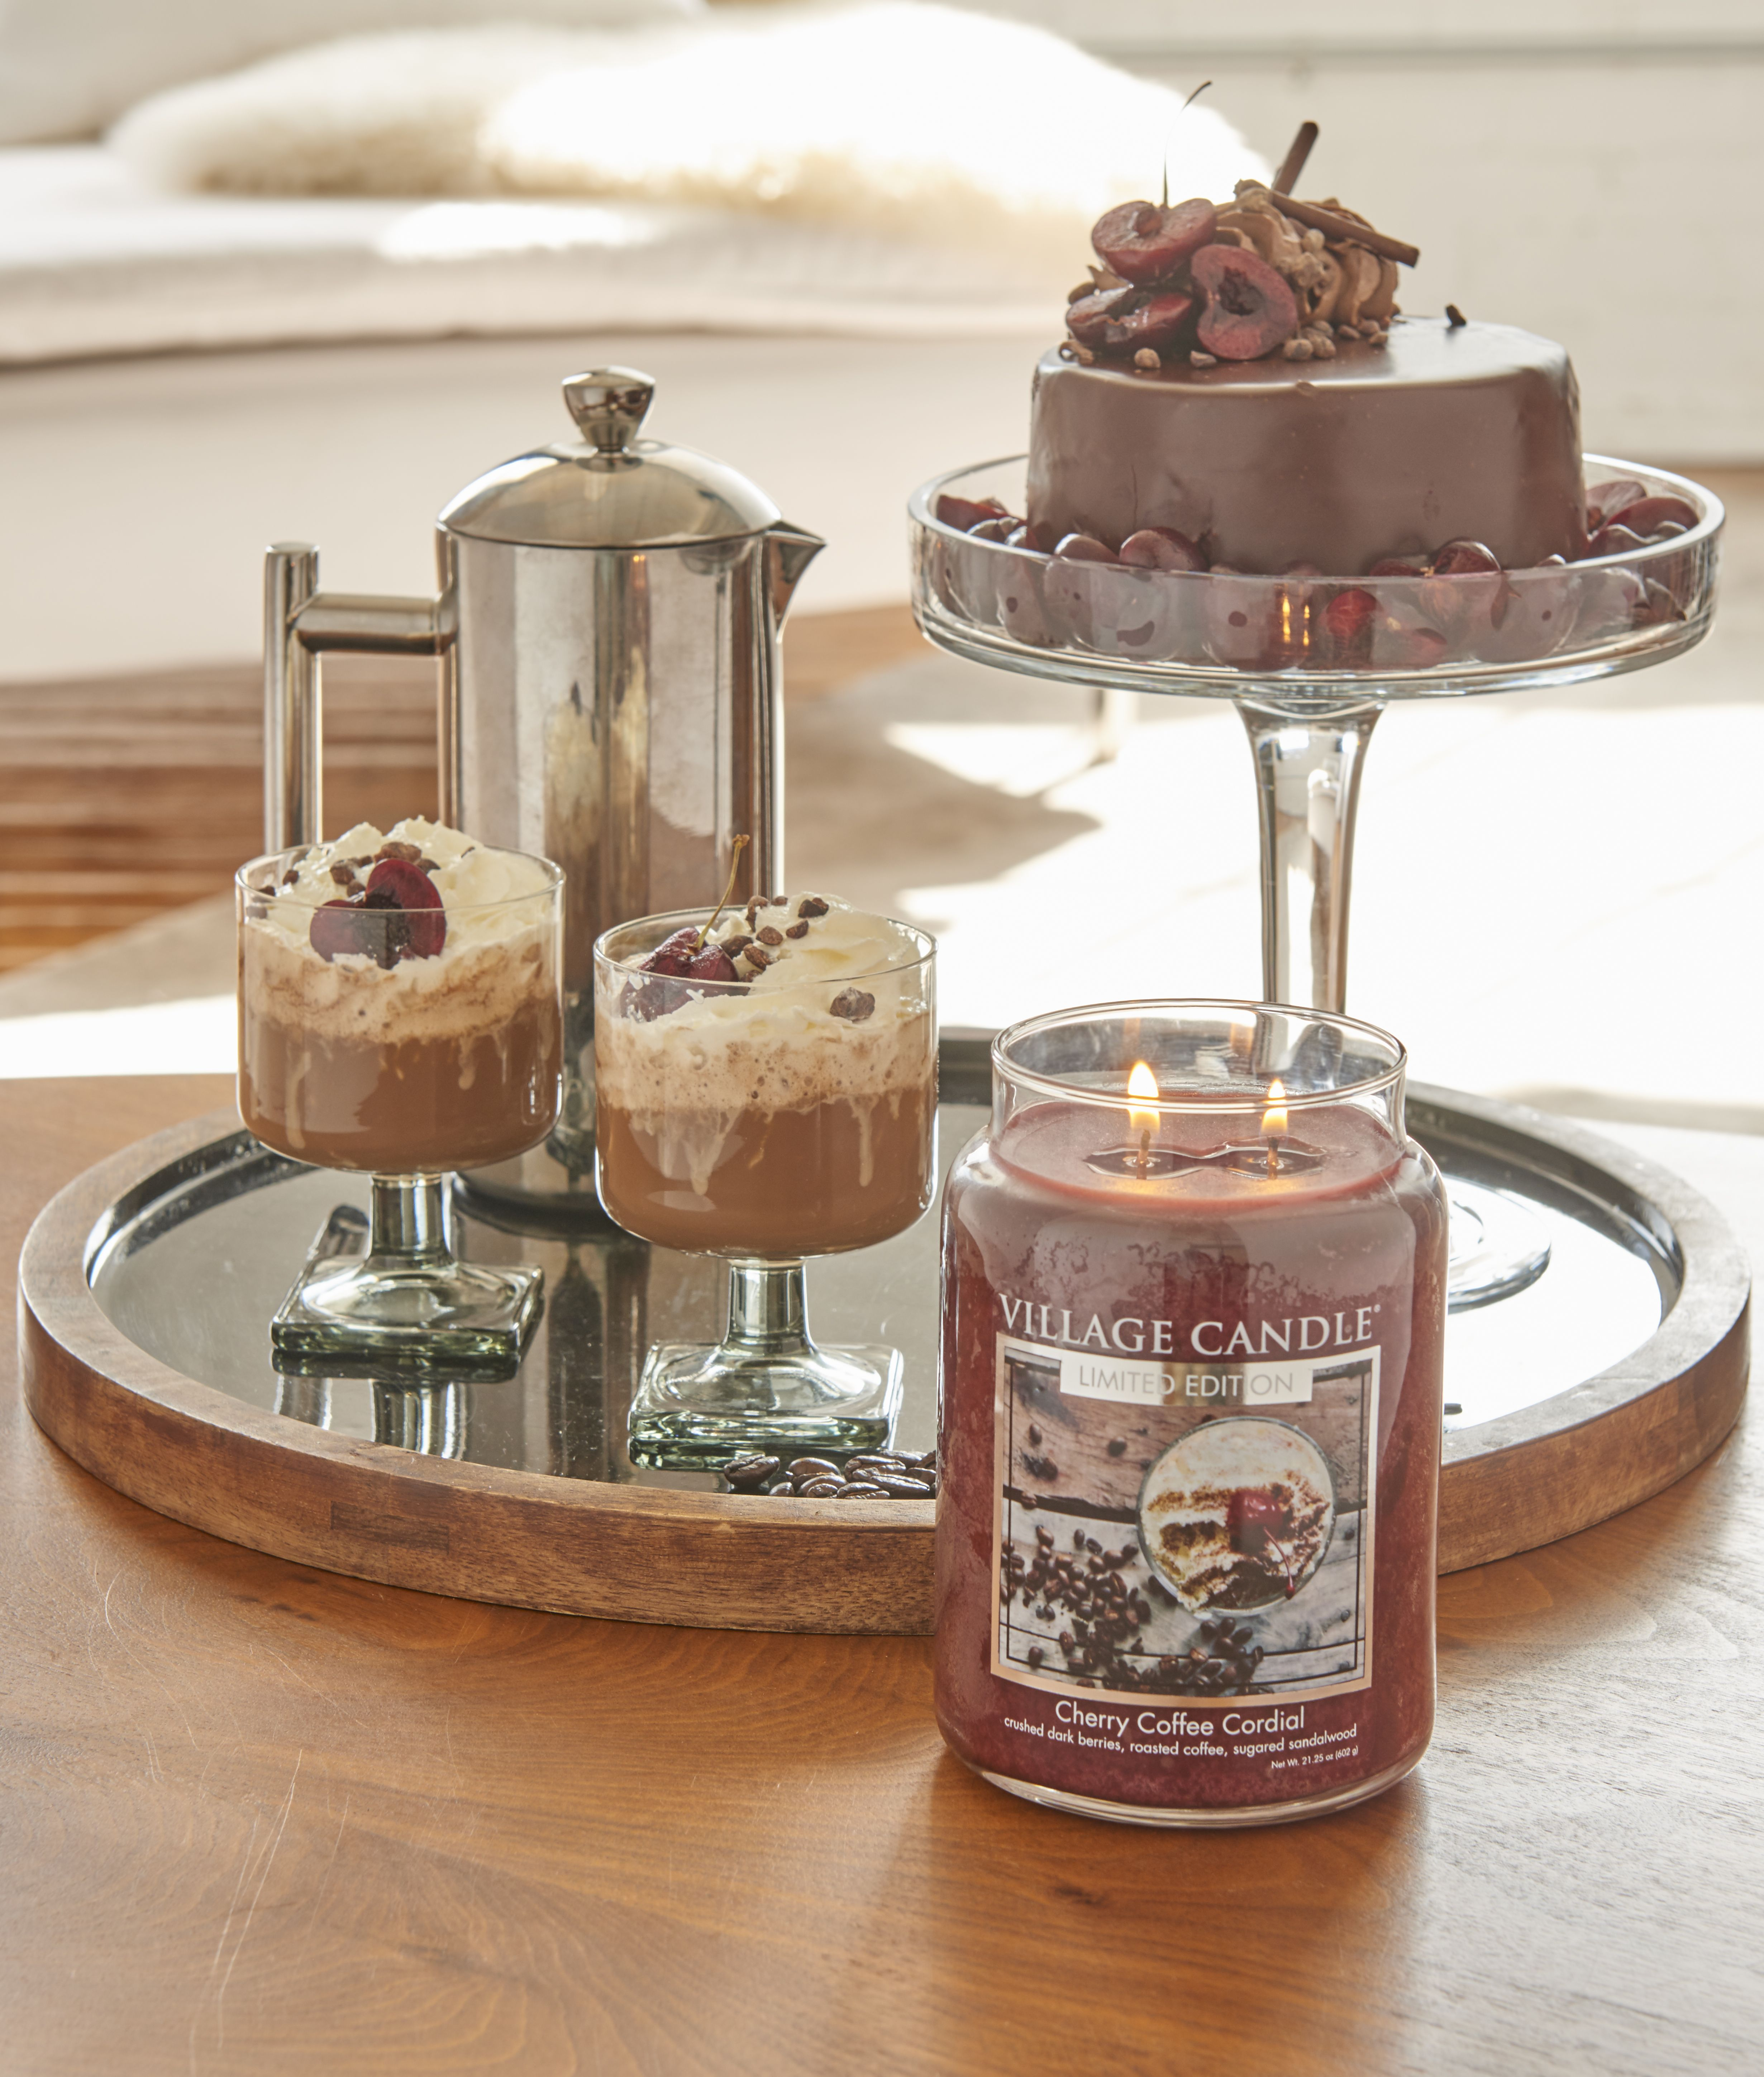 Indulge and enjoy the afterdinner moments cherry coffee